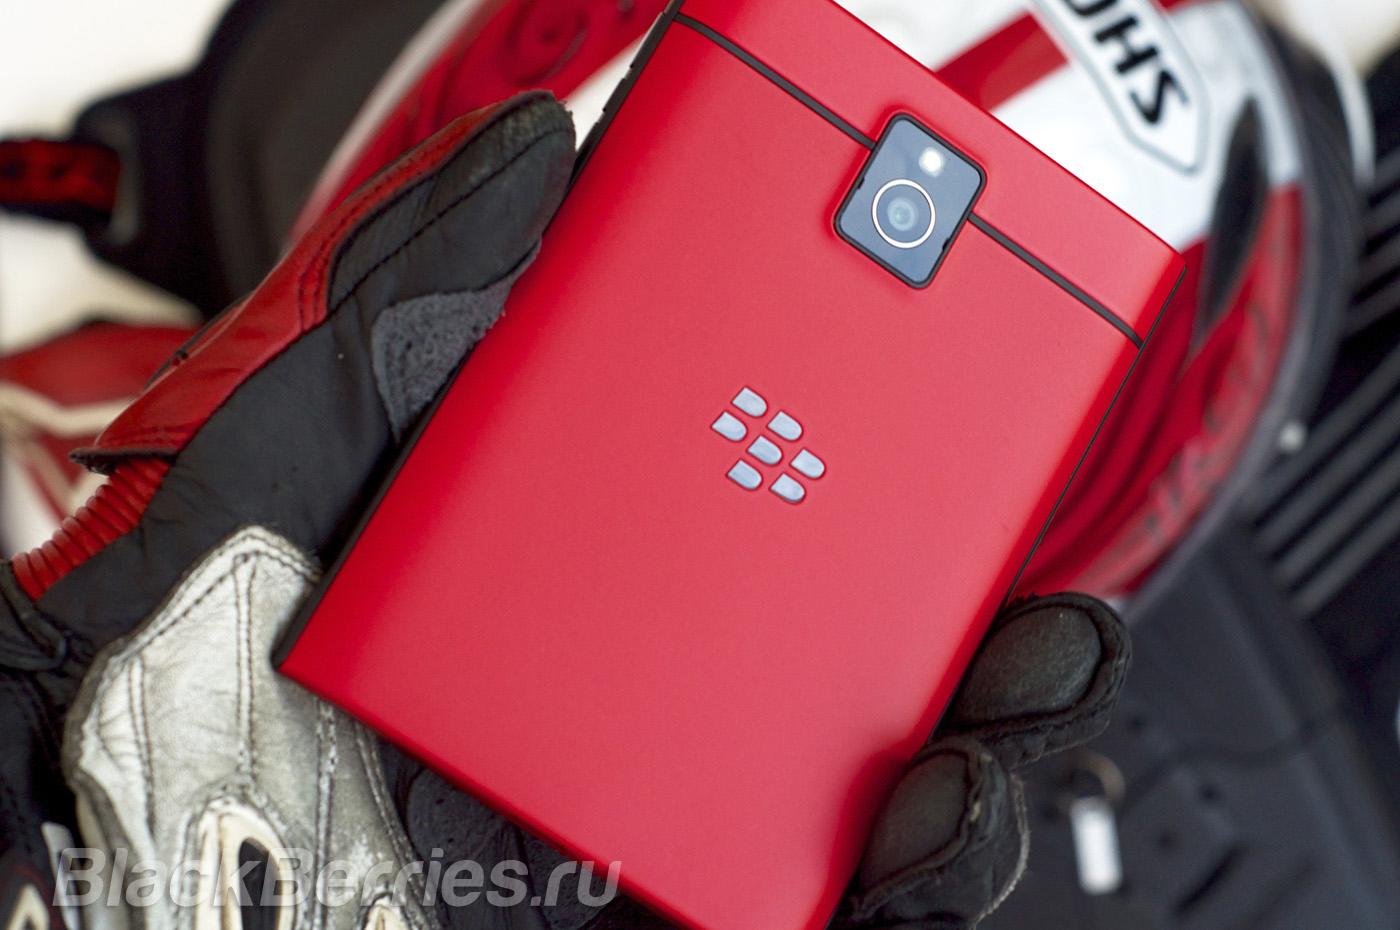 BlackBerry-Passport-Red-15